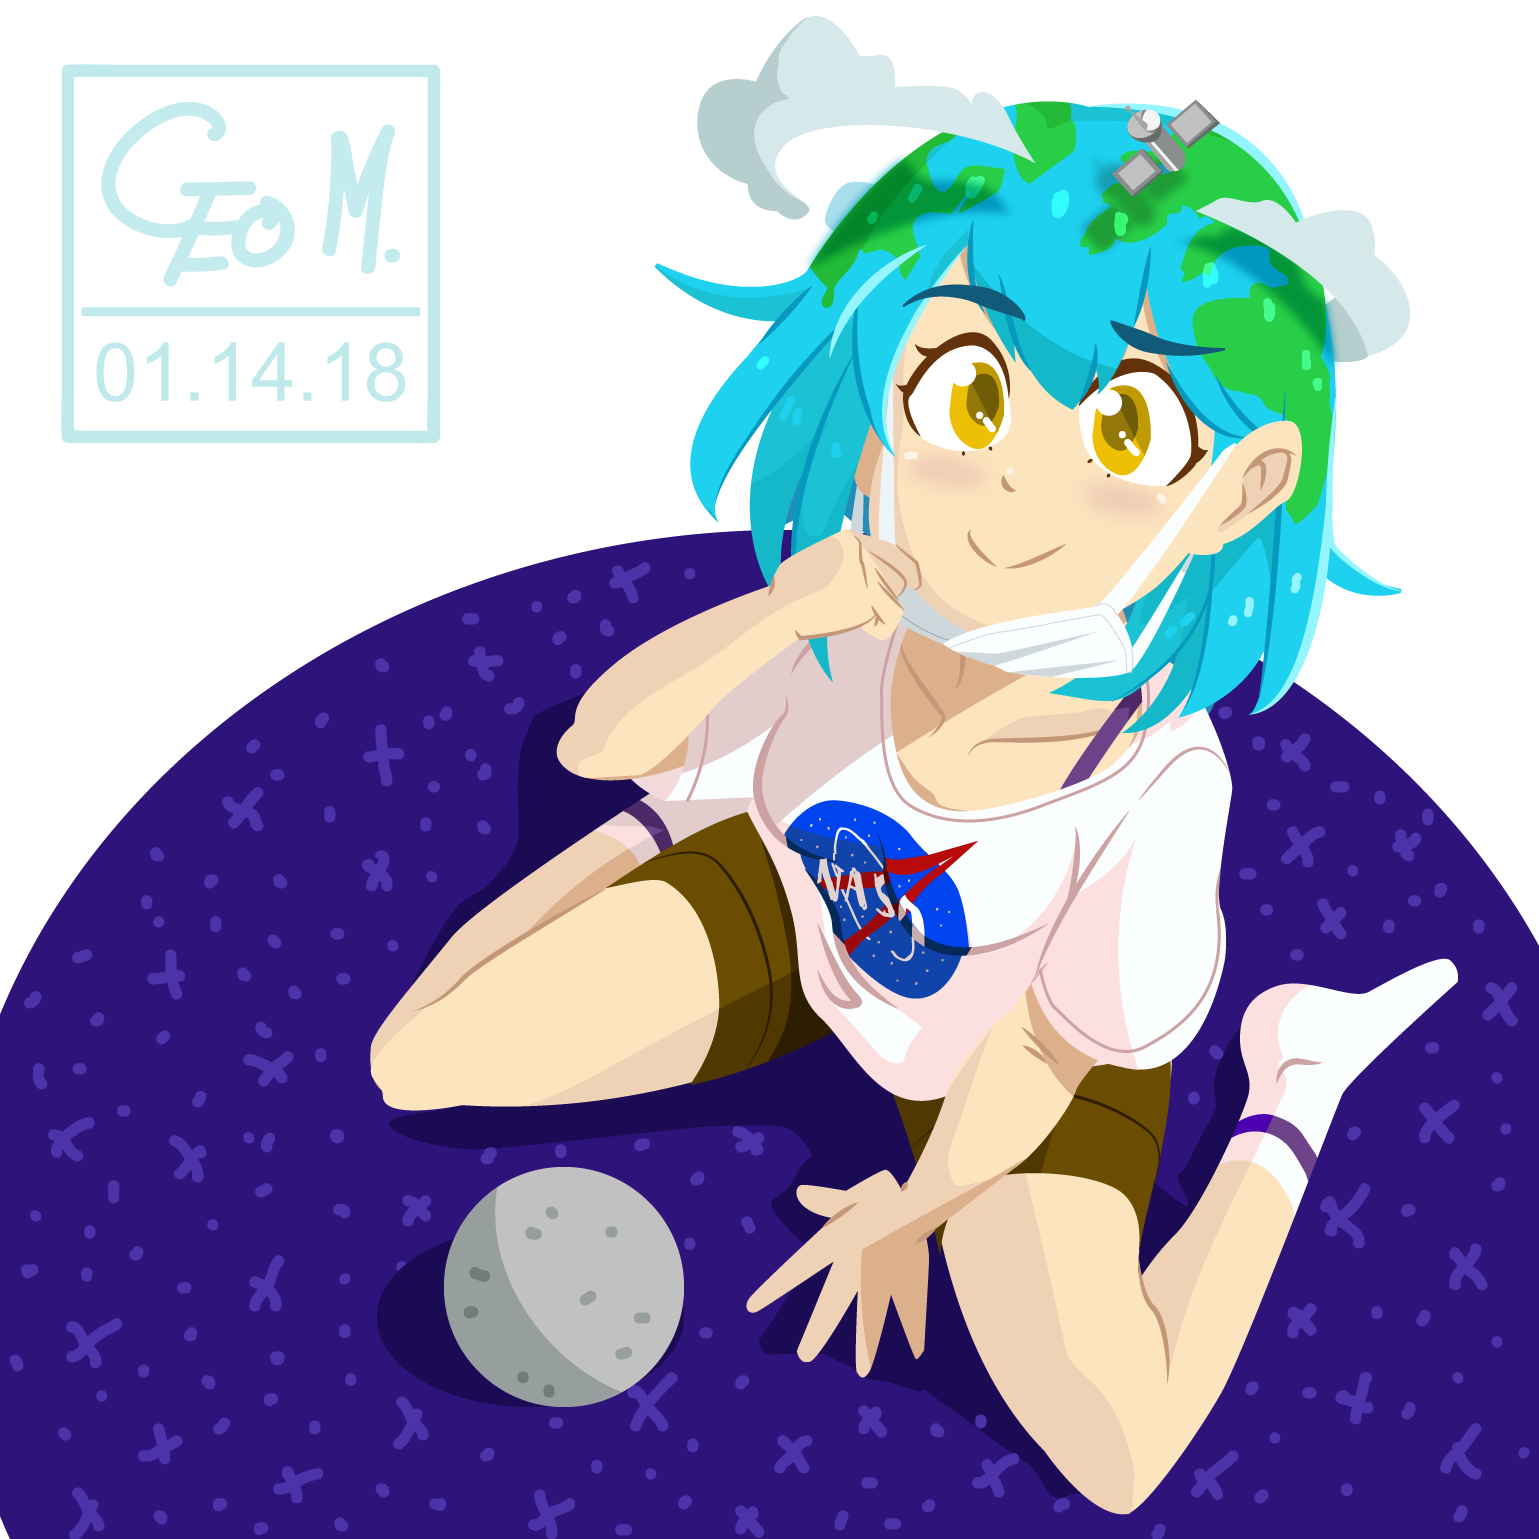 Earth-Chan-01.14.17.png